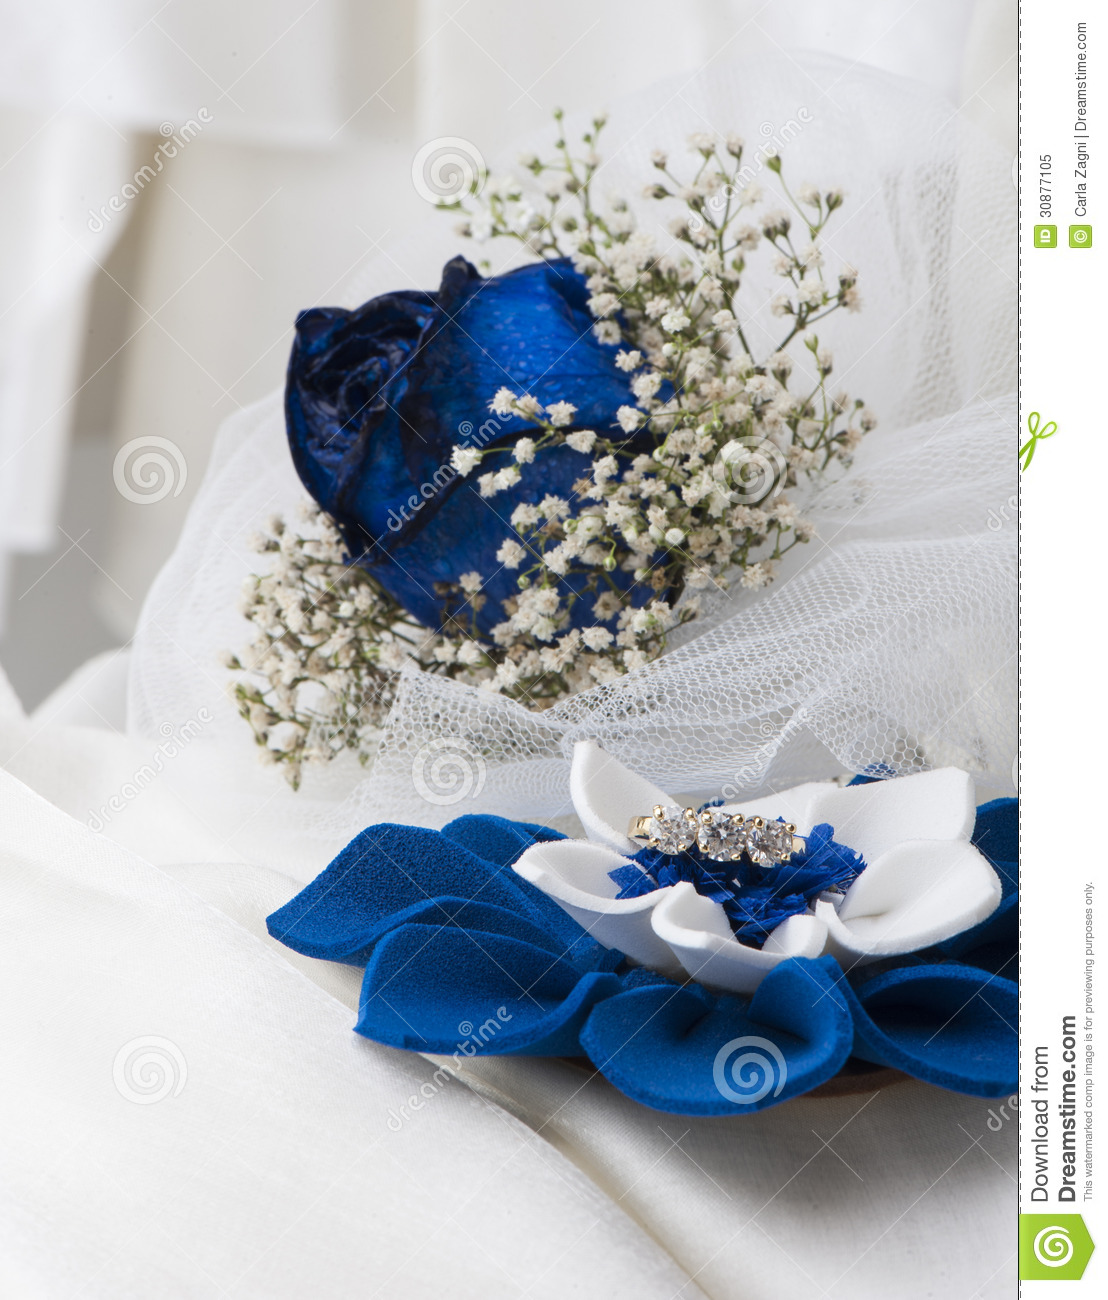 A Blue Roses And Wedding Rings Royalty Free Stock Photo Image 30877105